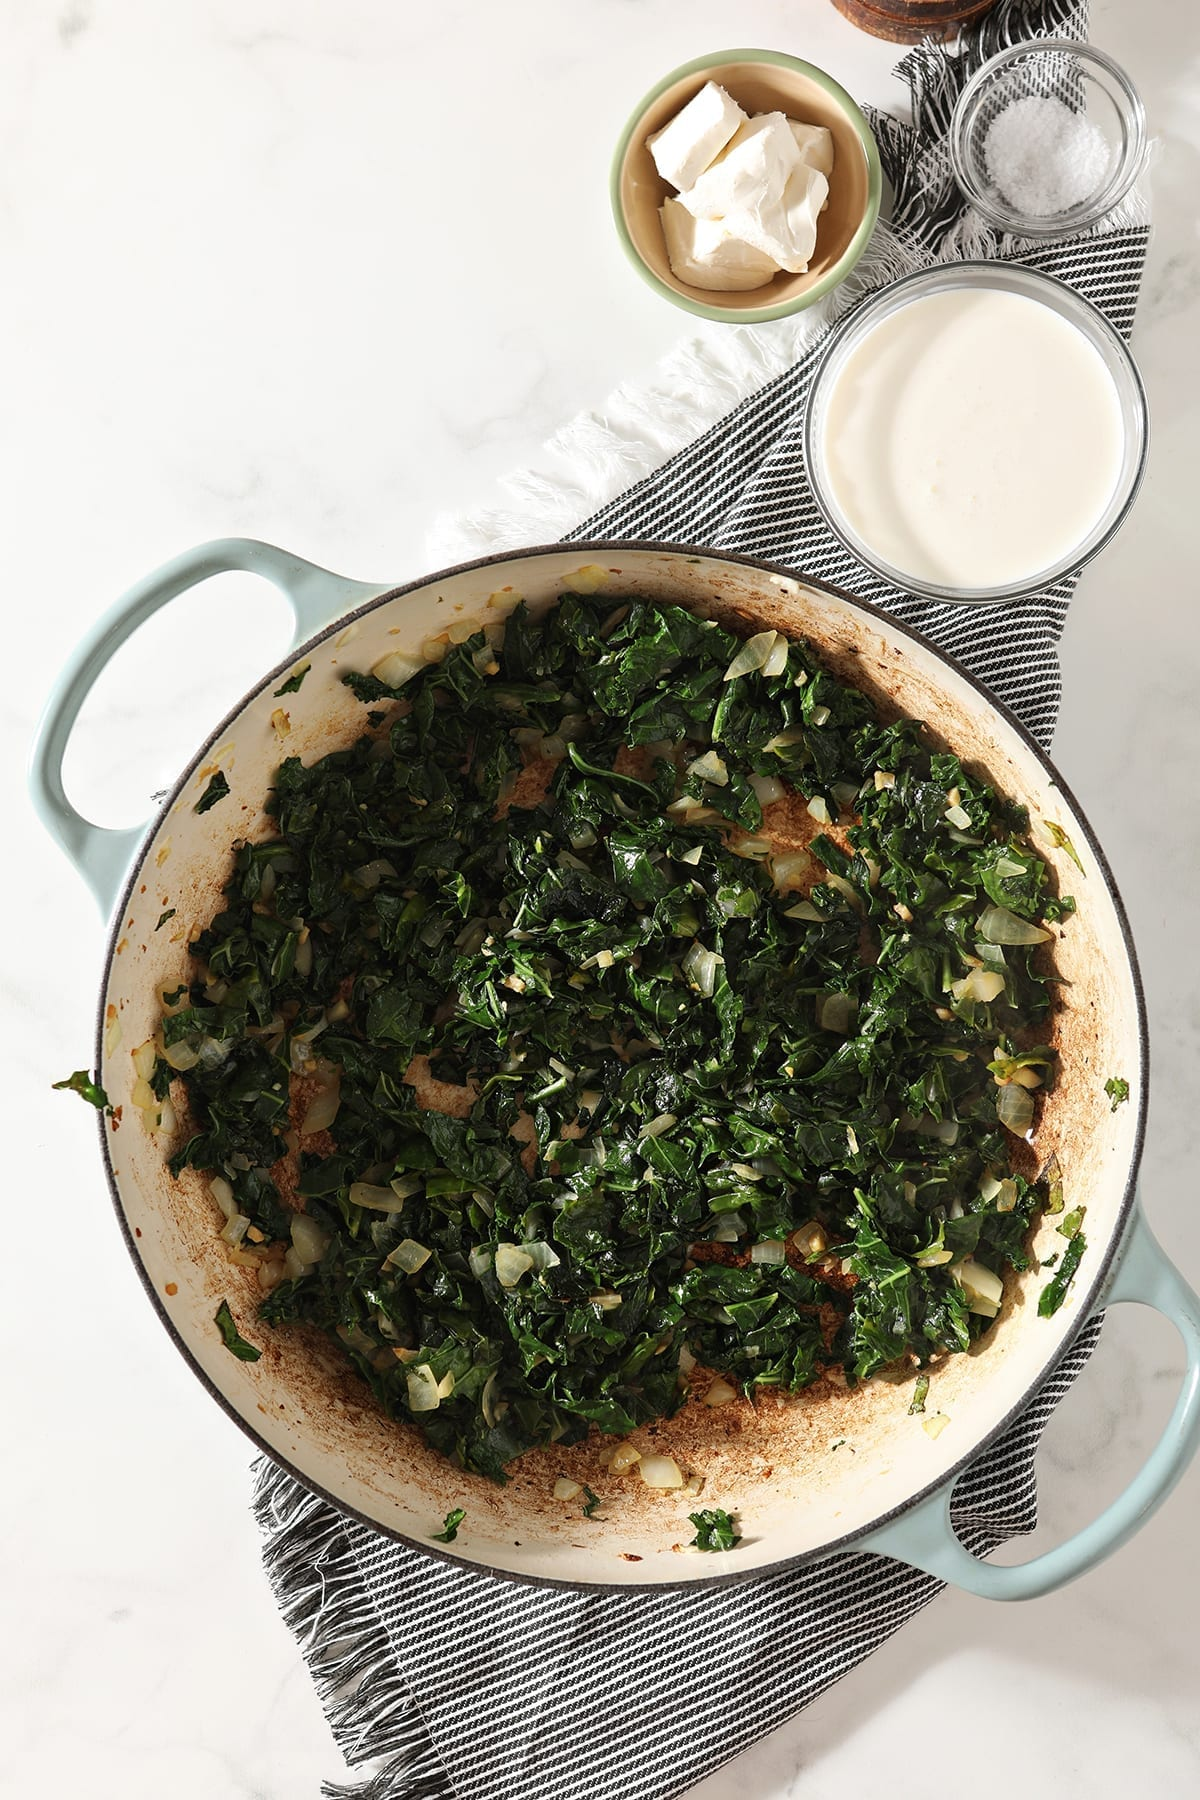 Overhead of sauteed kale and garlic in a pan sitting on a gray striped towel next to cream and cream cheese